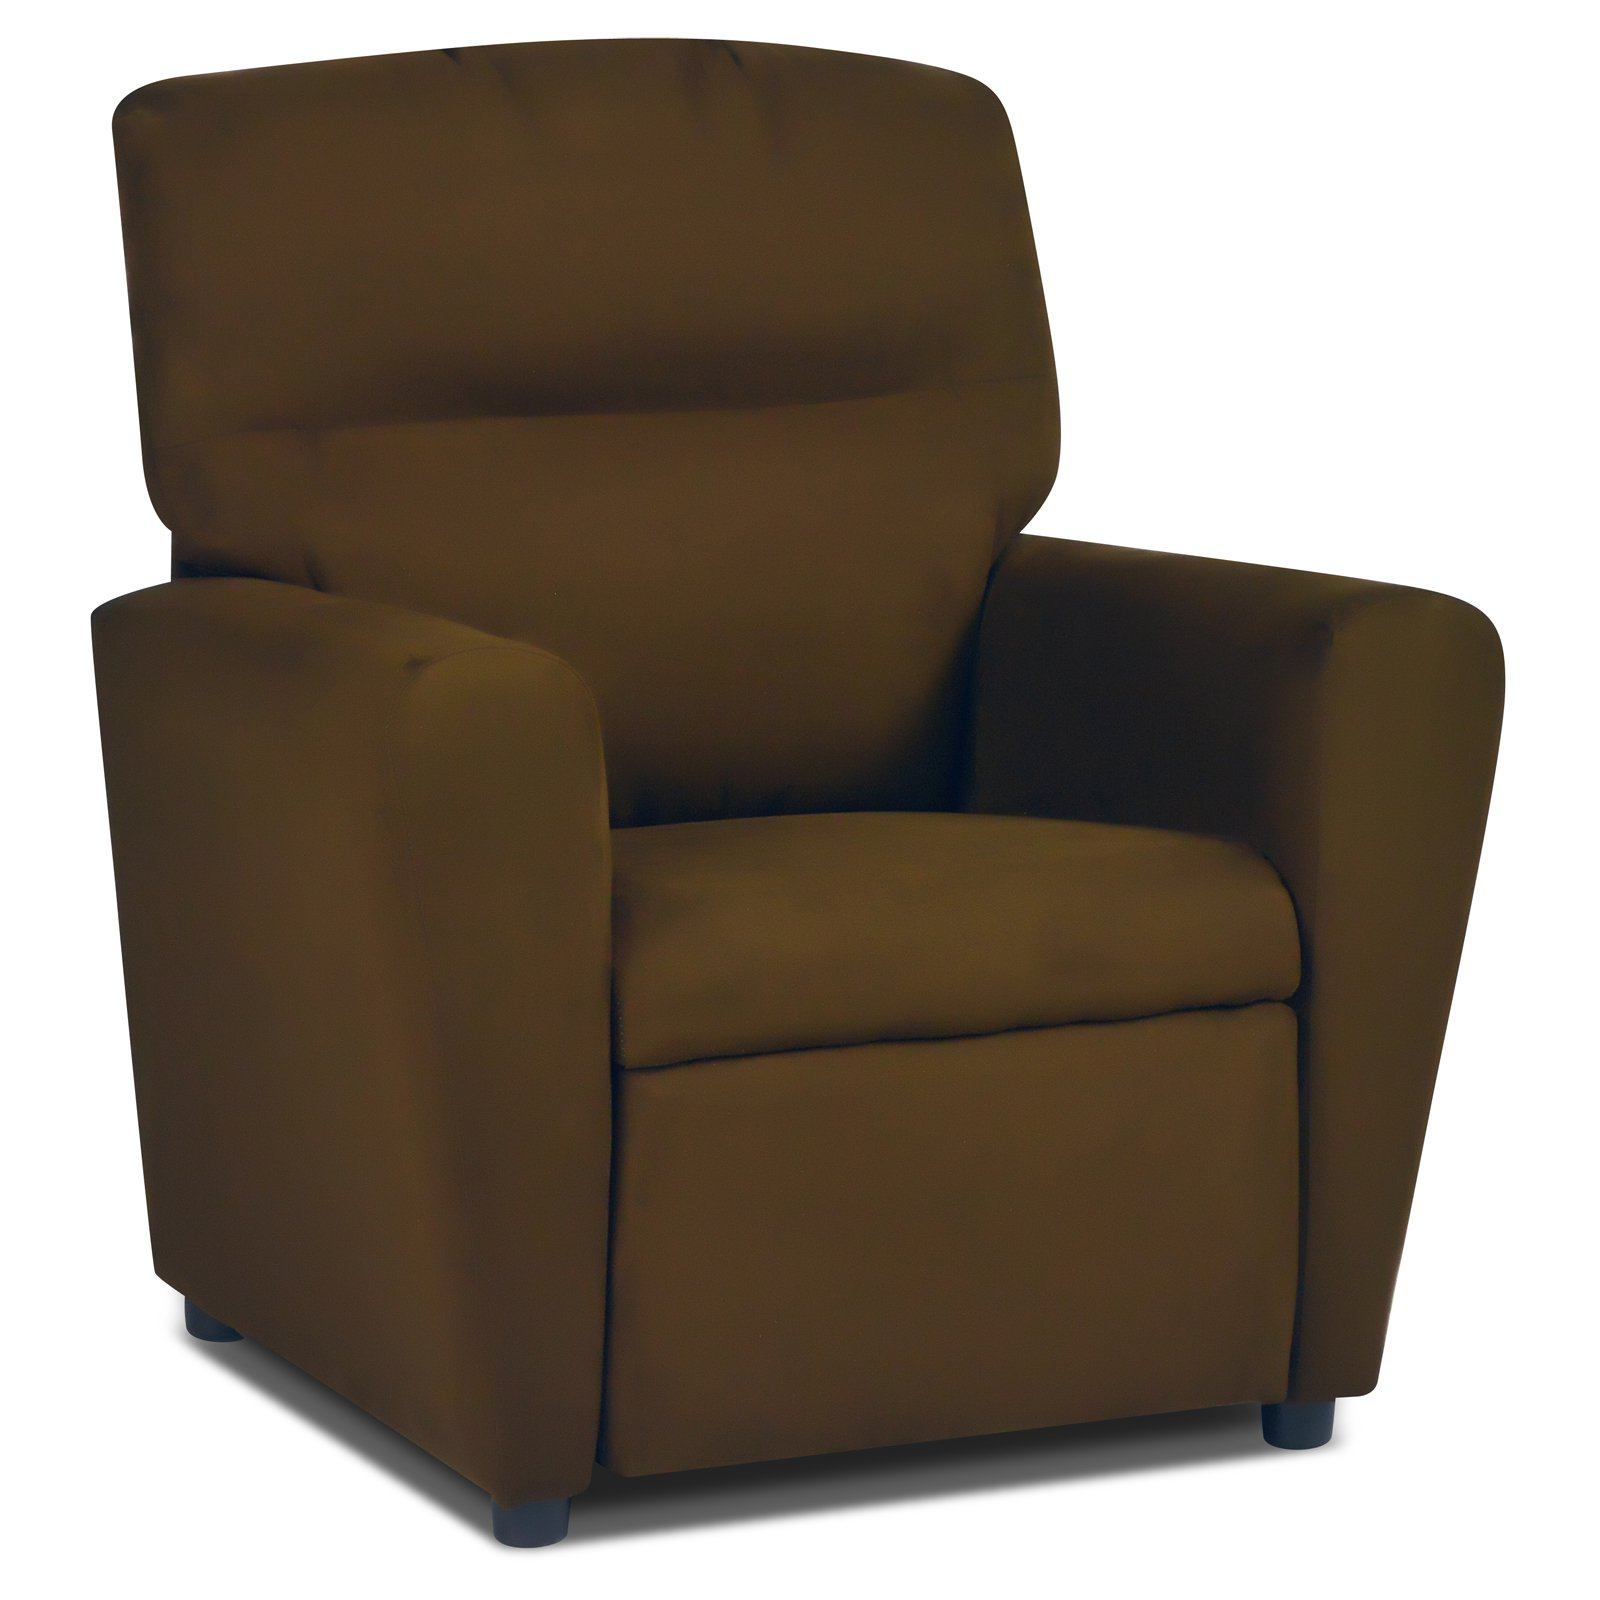 Tween Recliner - Bison